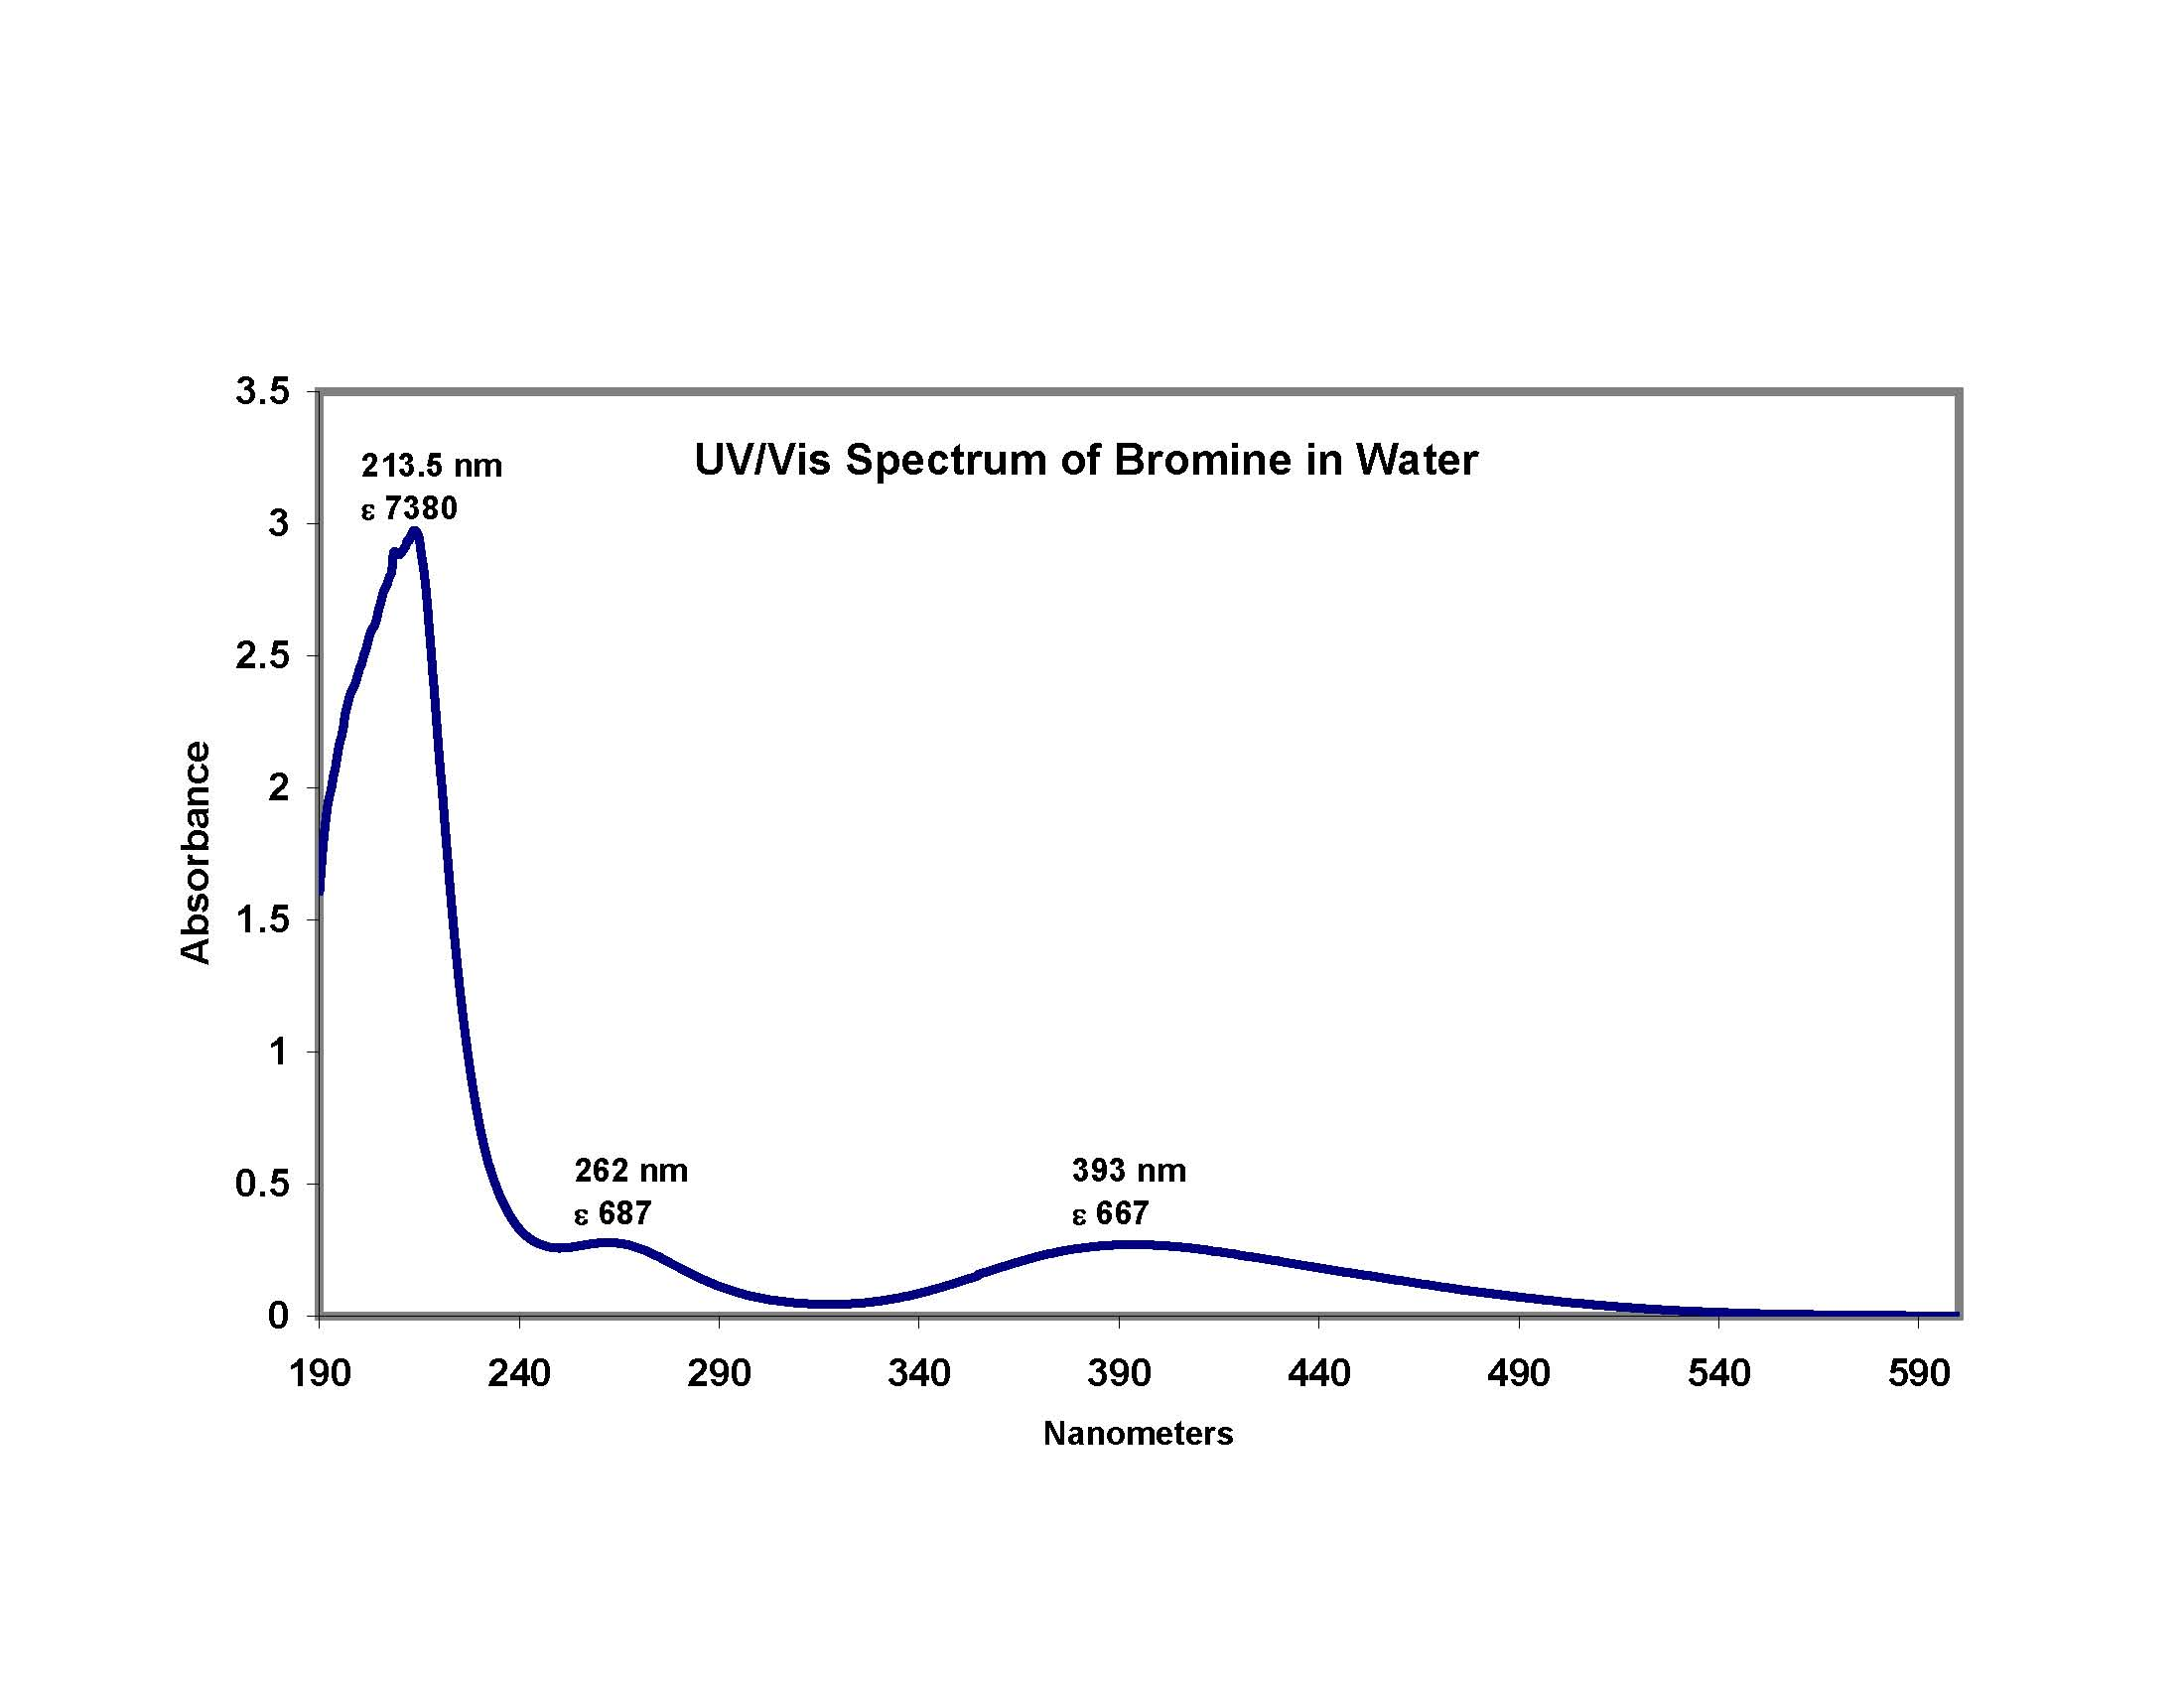 UV/Vis Spectrum of Bromine in Water | Lamentations on Chemistry